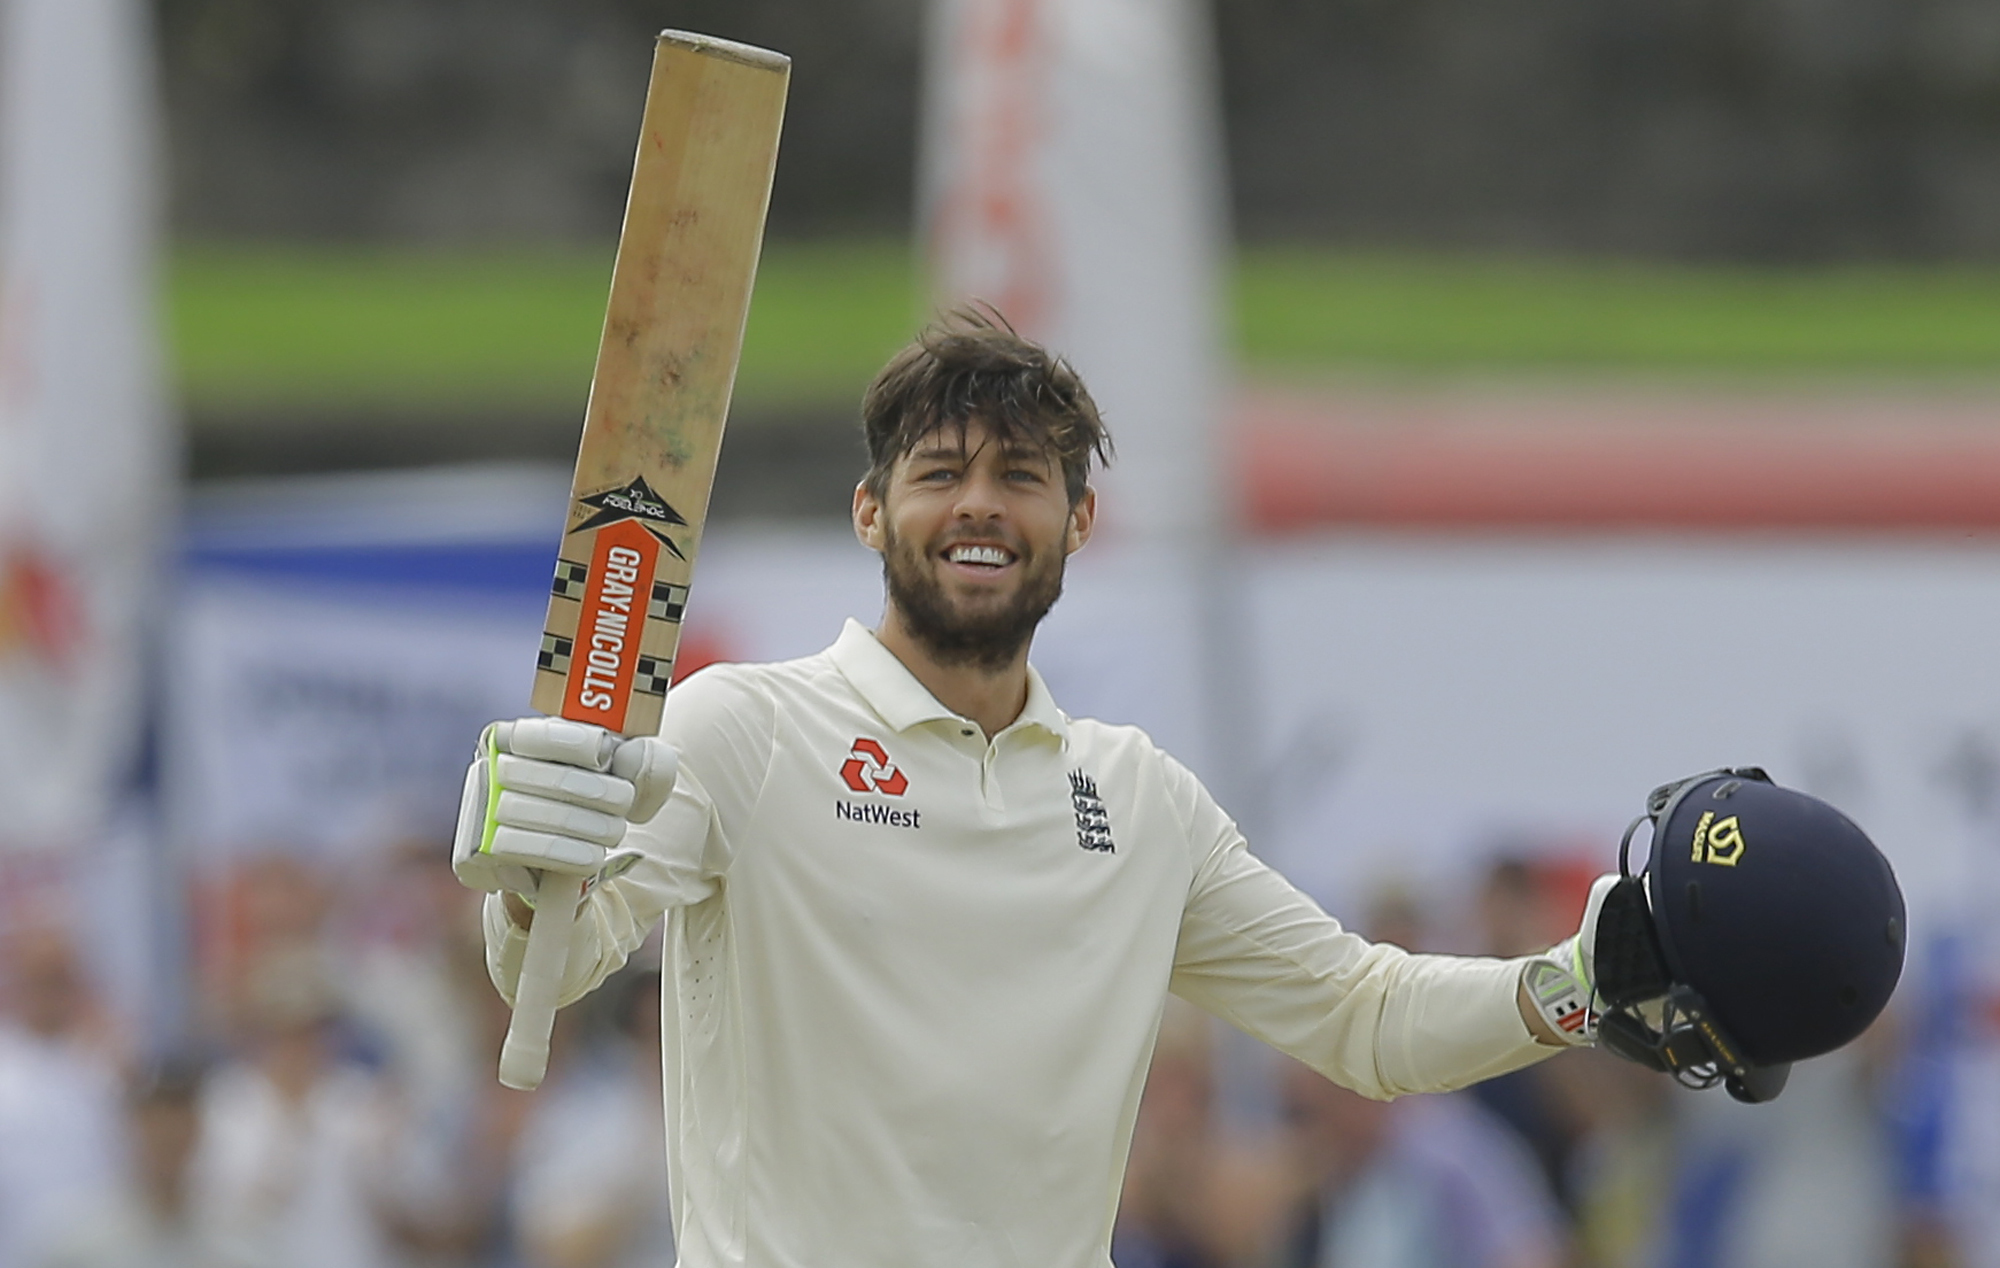 England's Ben Foakes celebrates scoring a century during the second day of the first test cricket match between Sri Lanka and England in Galle, Sri Lanka, Wednesday, Nov. 7, 2018. (AP Photo/Eranga Jayawardena).